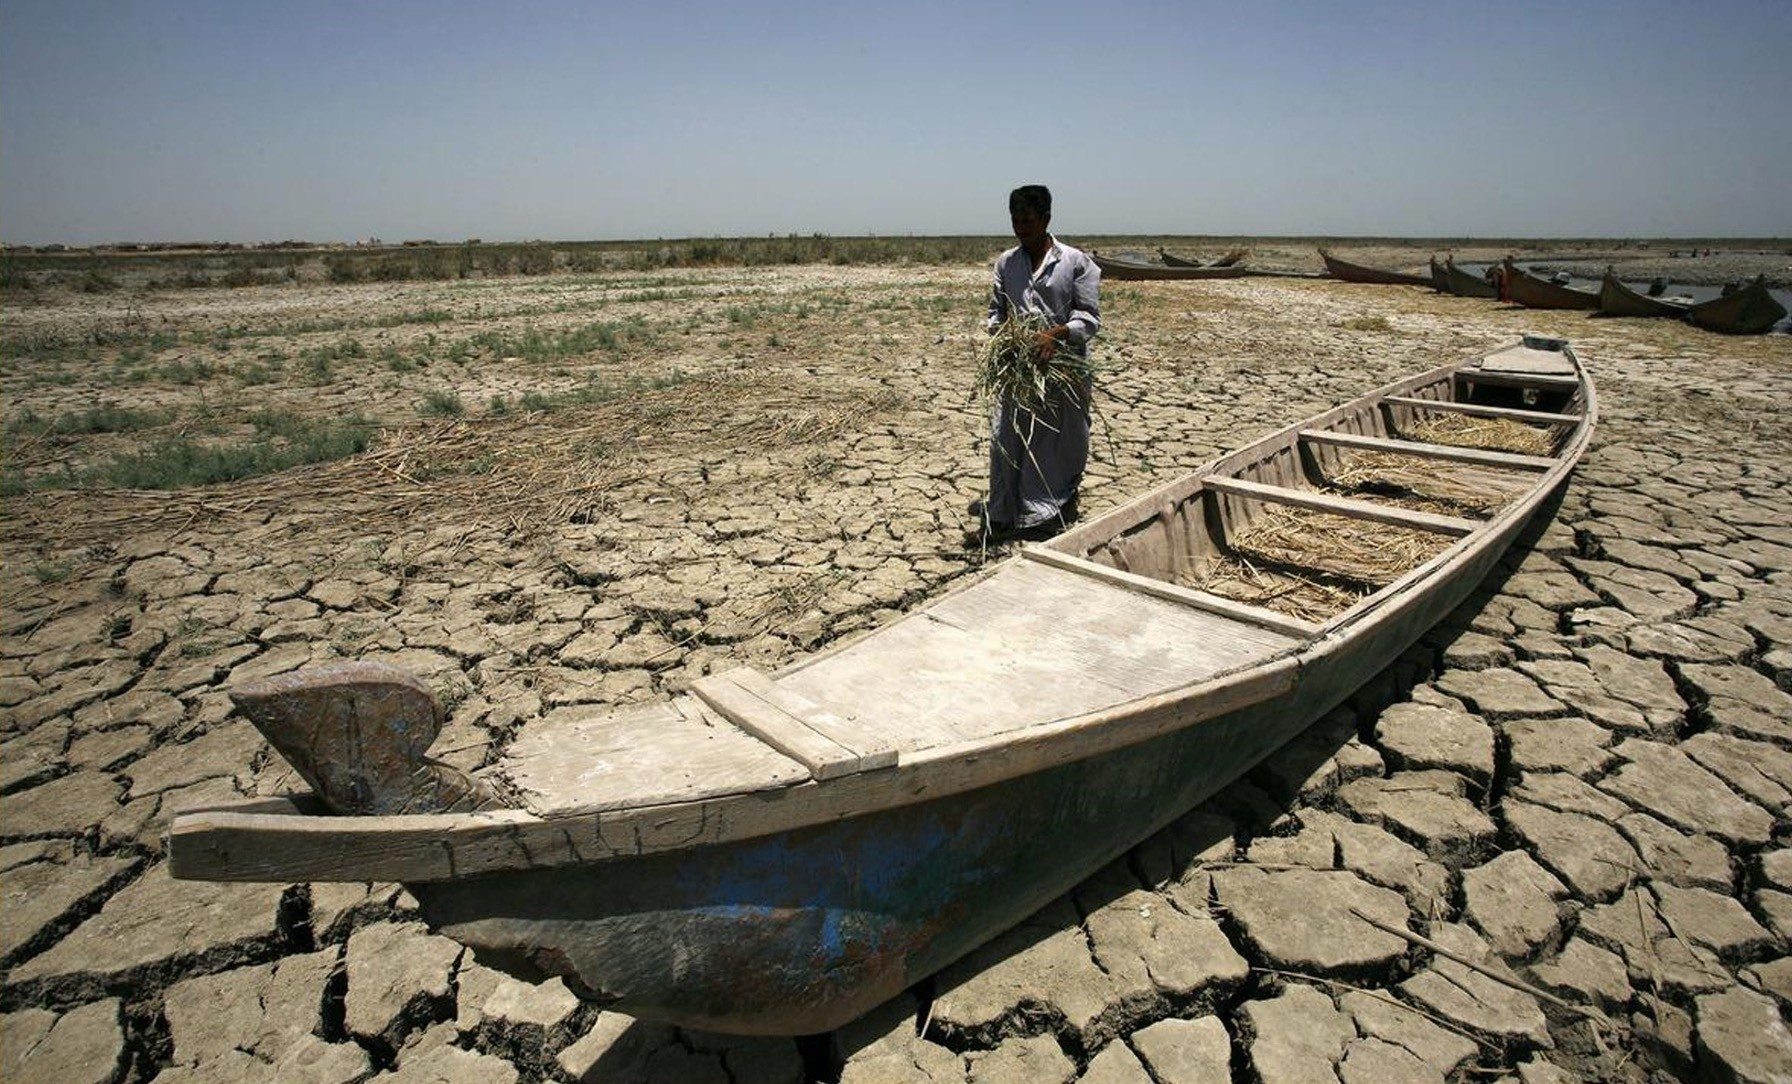 An Iraqi man passes by a boat resting on the dry and cracked ground in the Chibayish marshes, near the Iraqi city of Nasiriyah, in 2015.